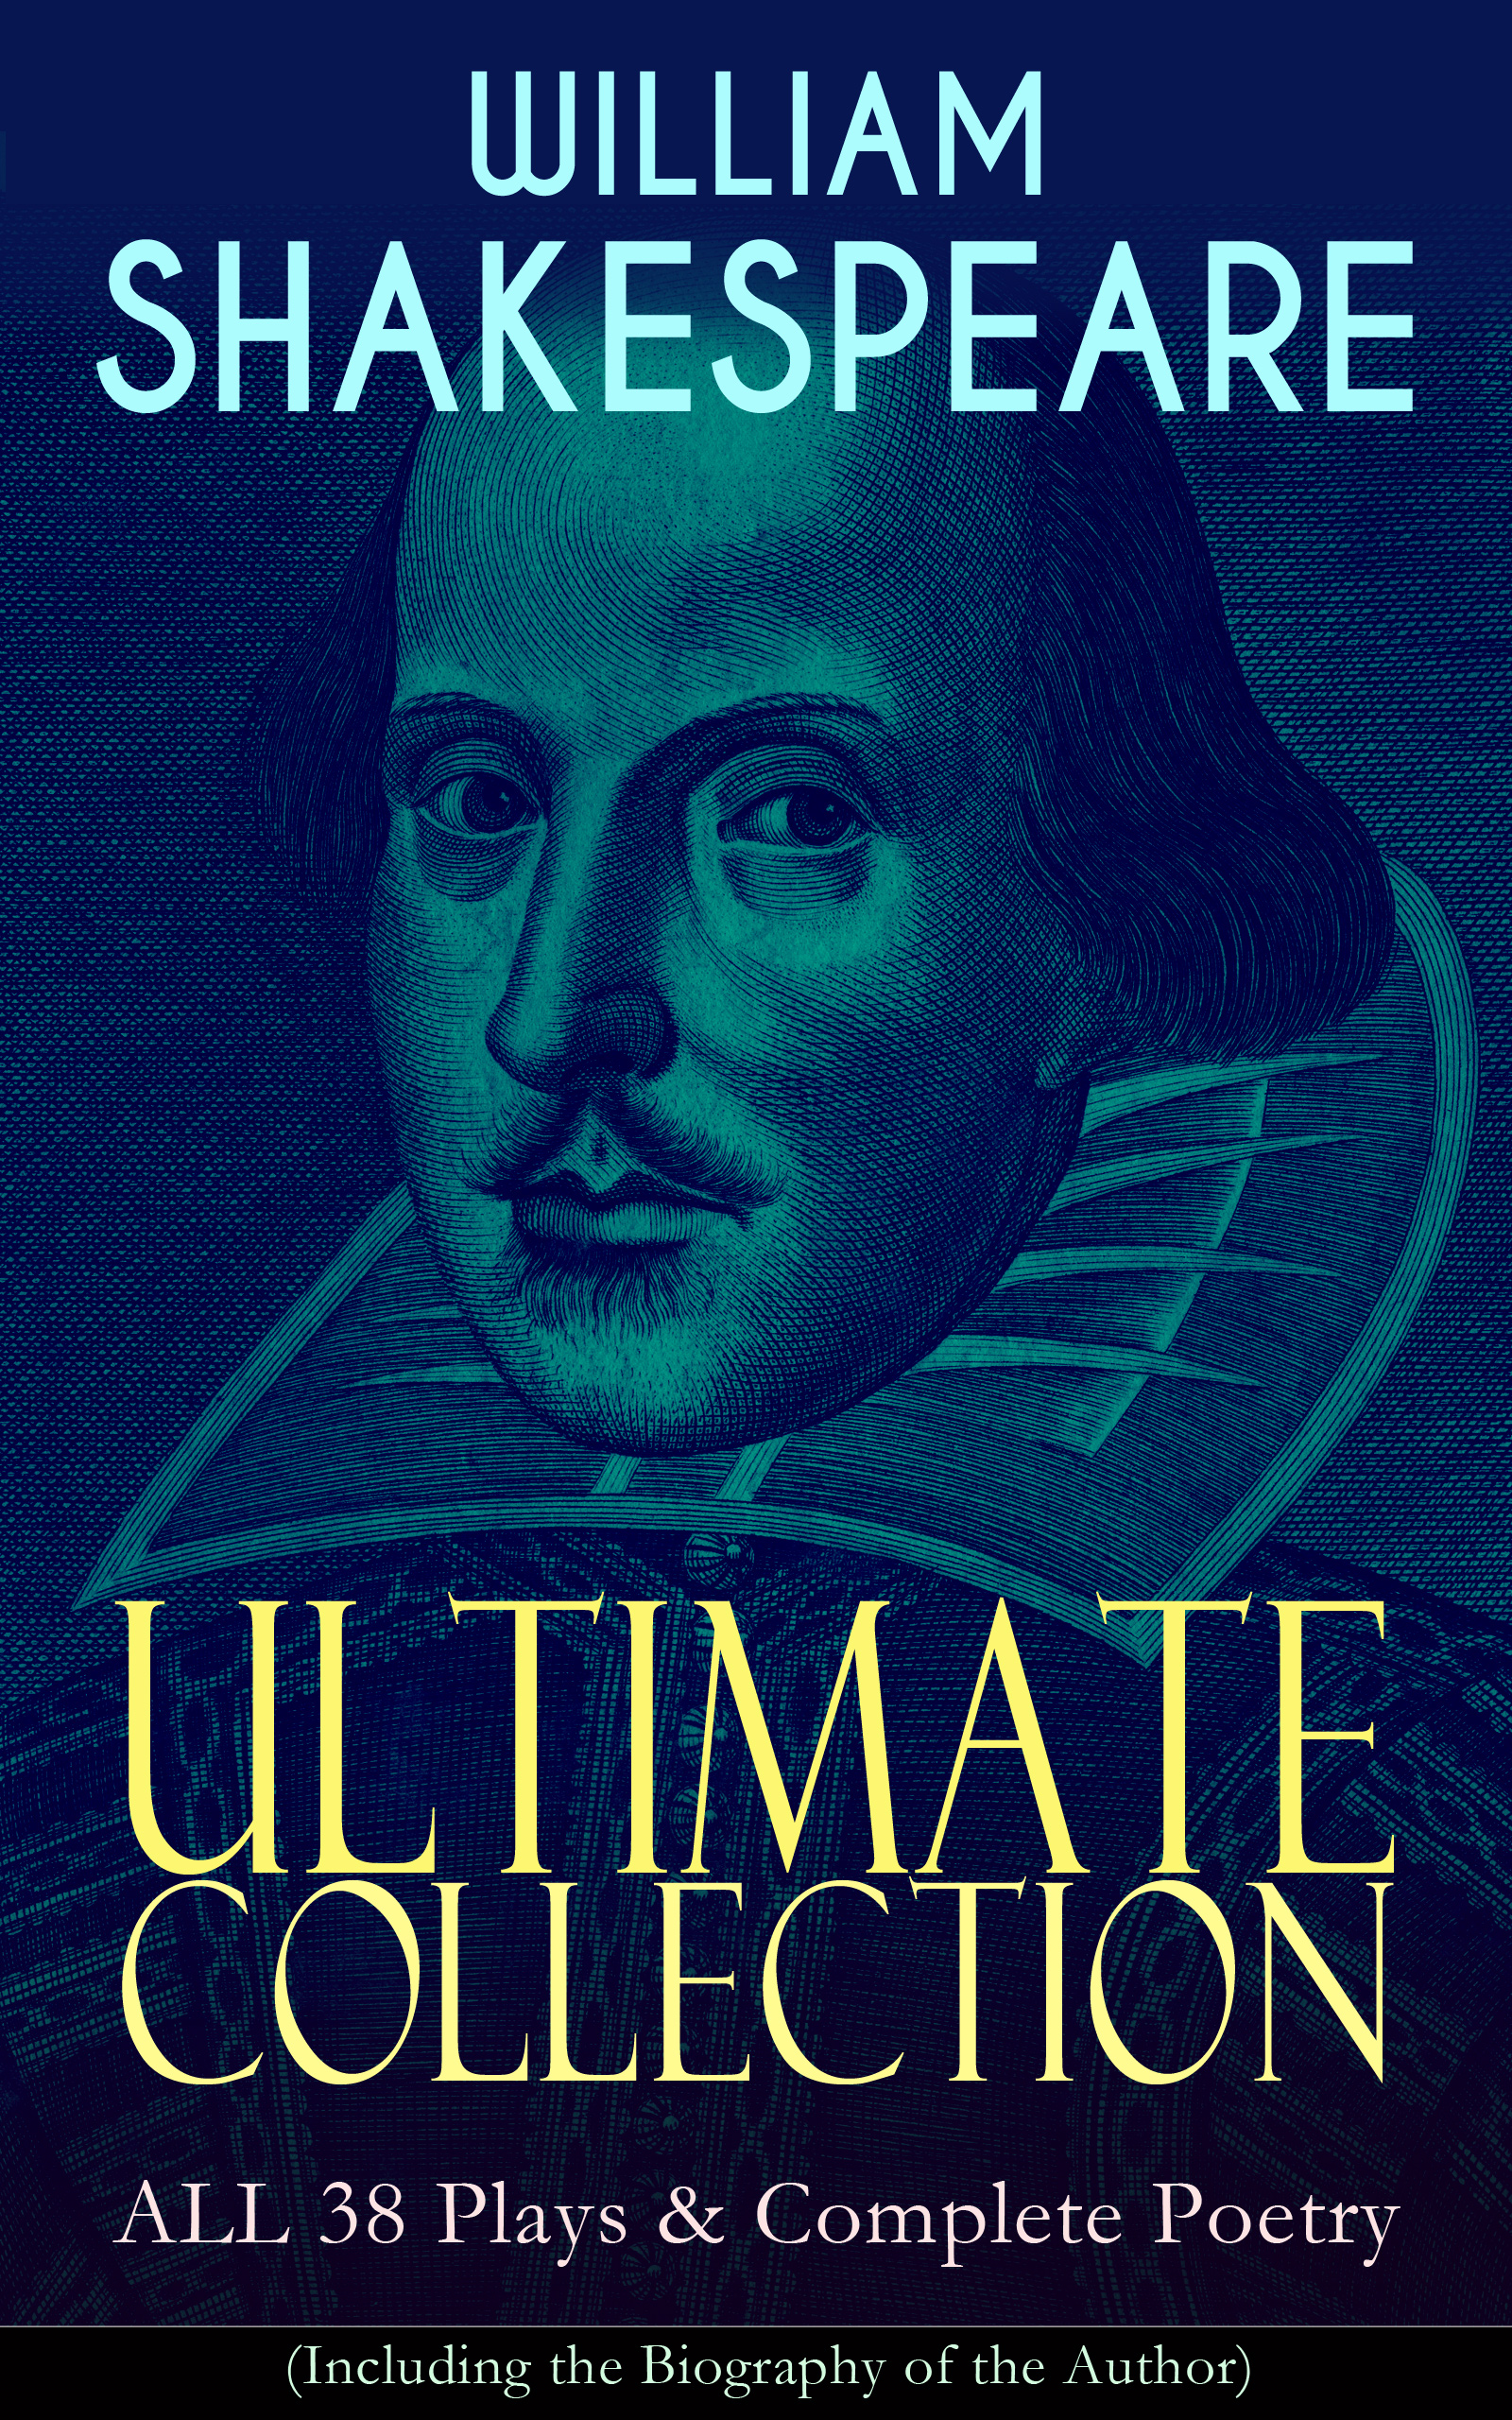 william shakespeare ultimate collection all 38 plays complete poetry including the biography of the author